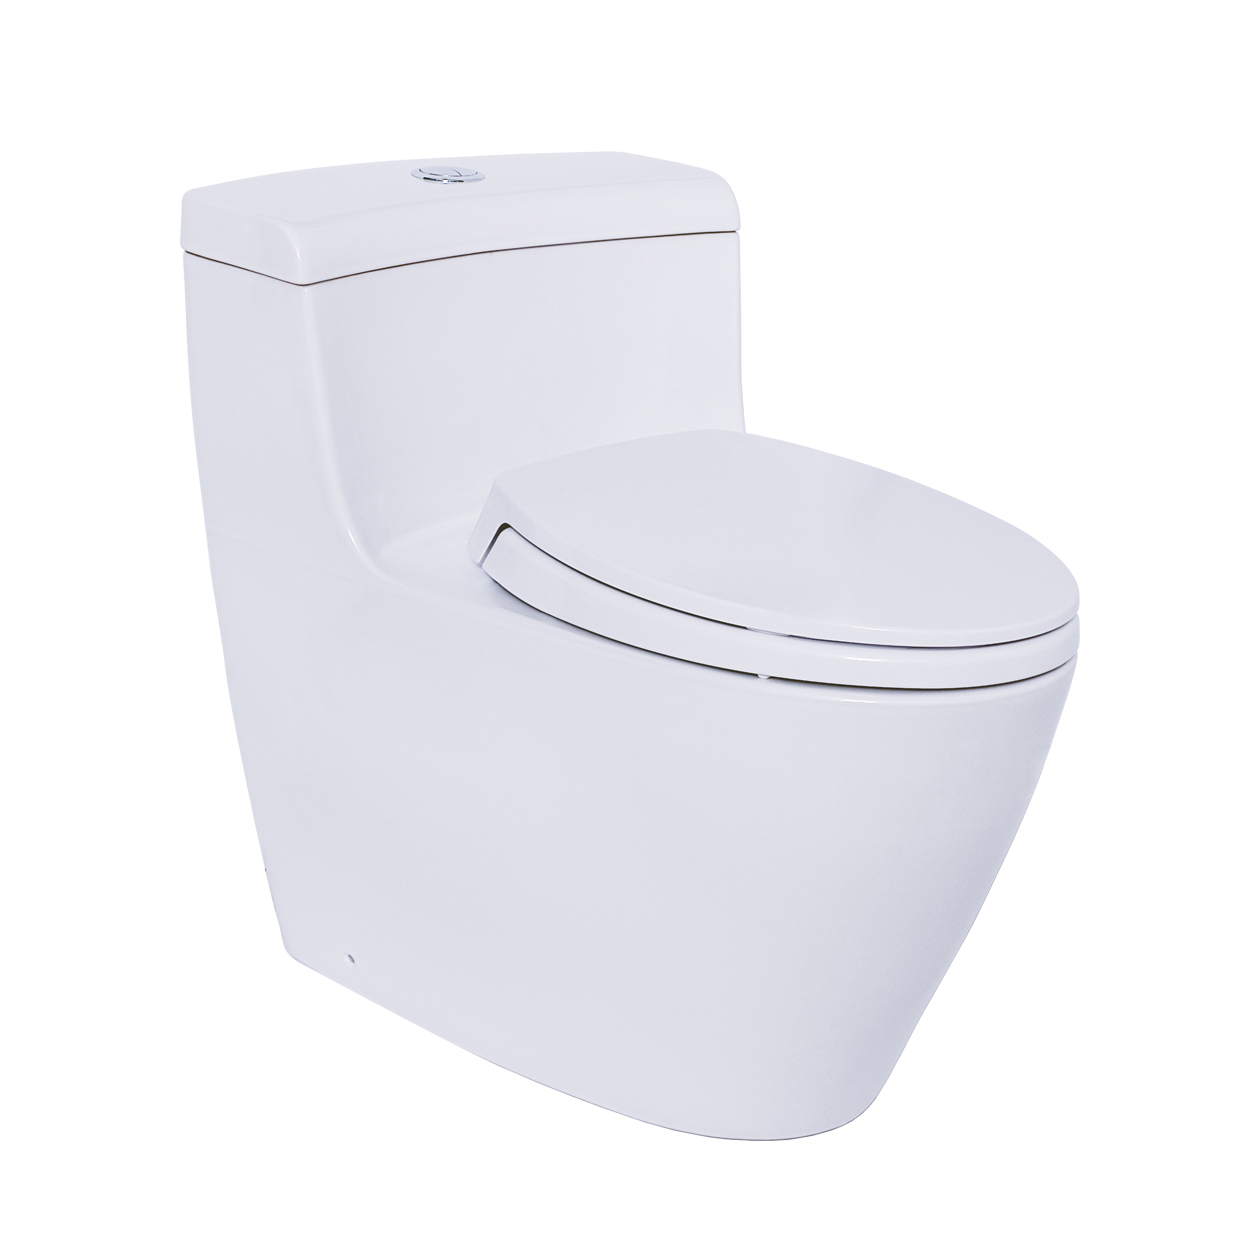 bồn cầu TOTO MS636DT2